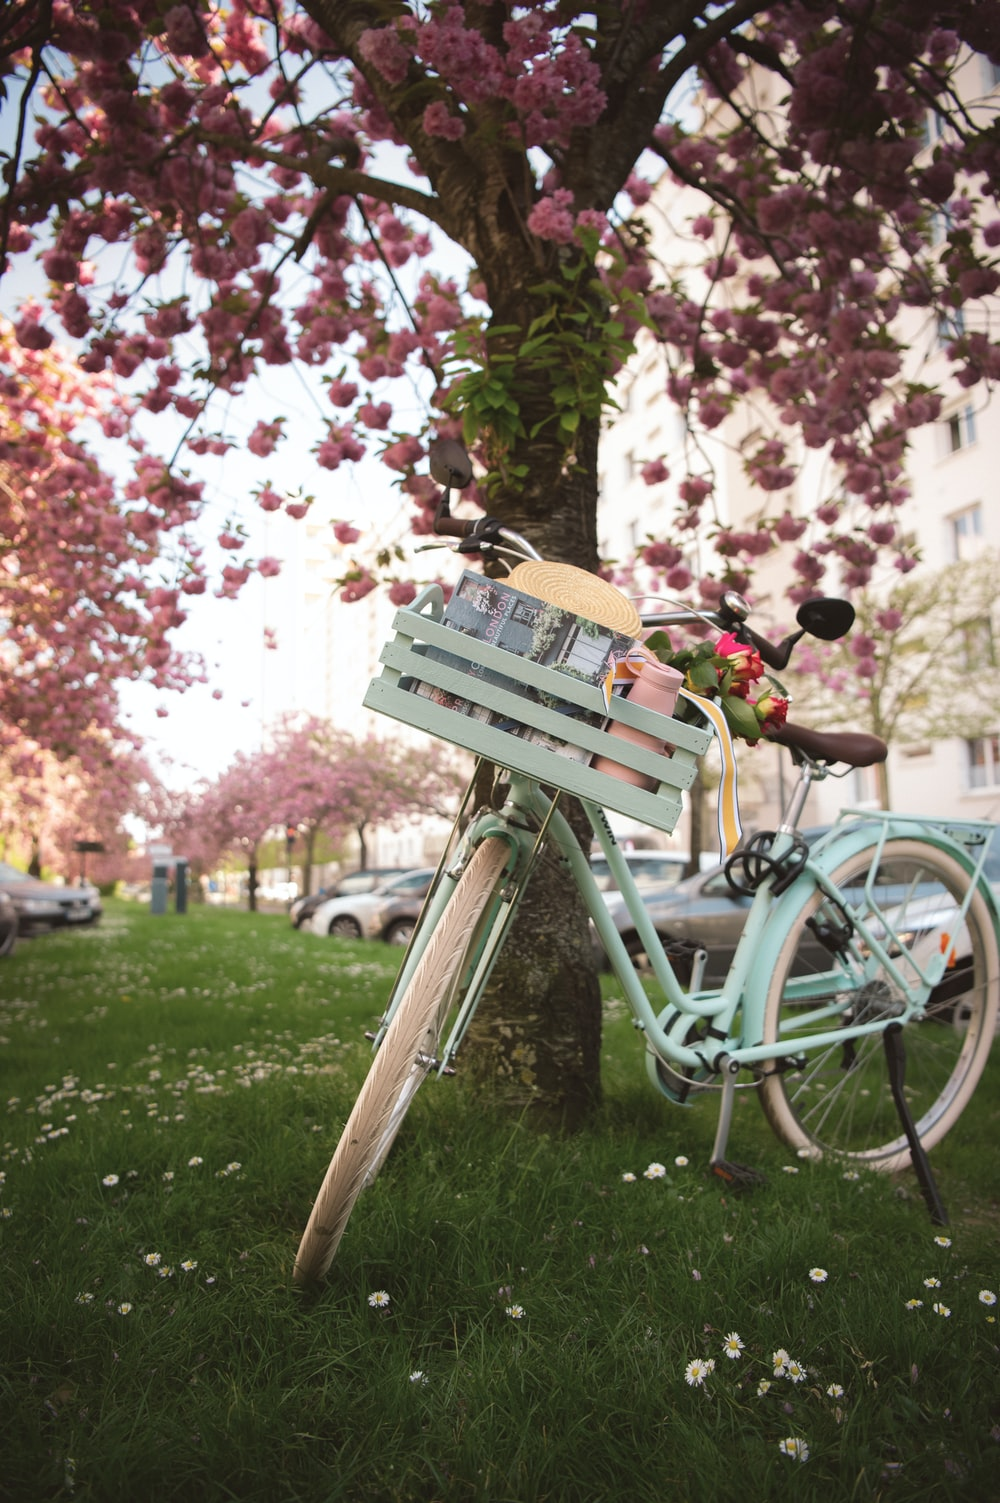 green bicycle on green grass field during daytime